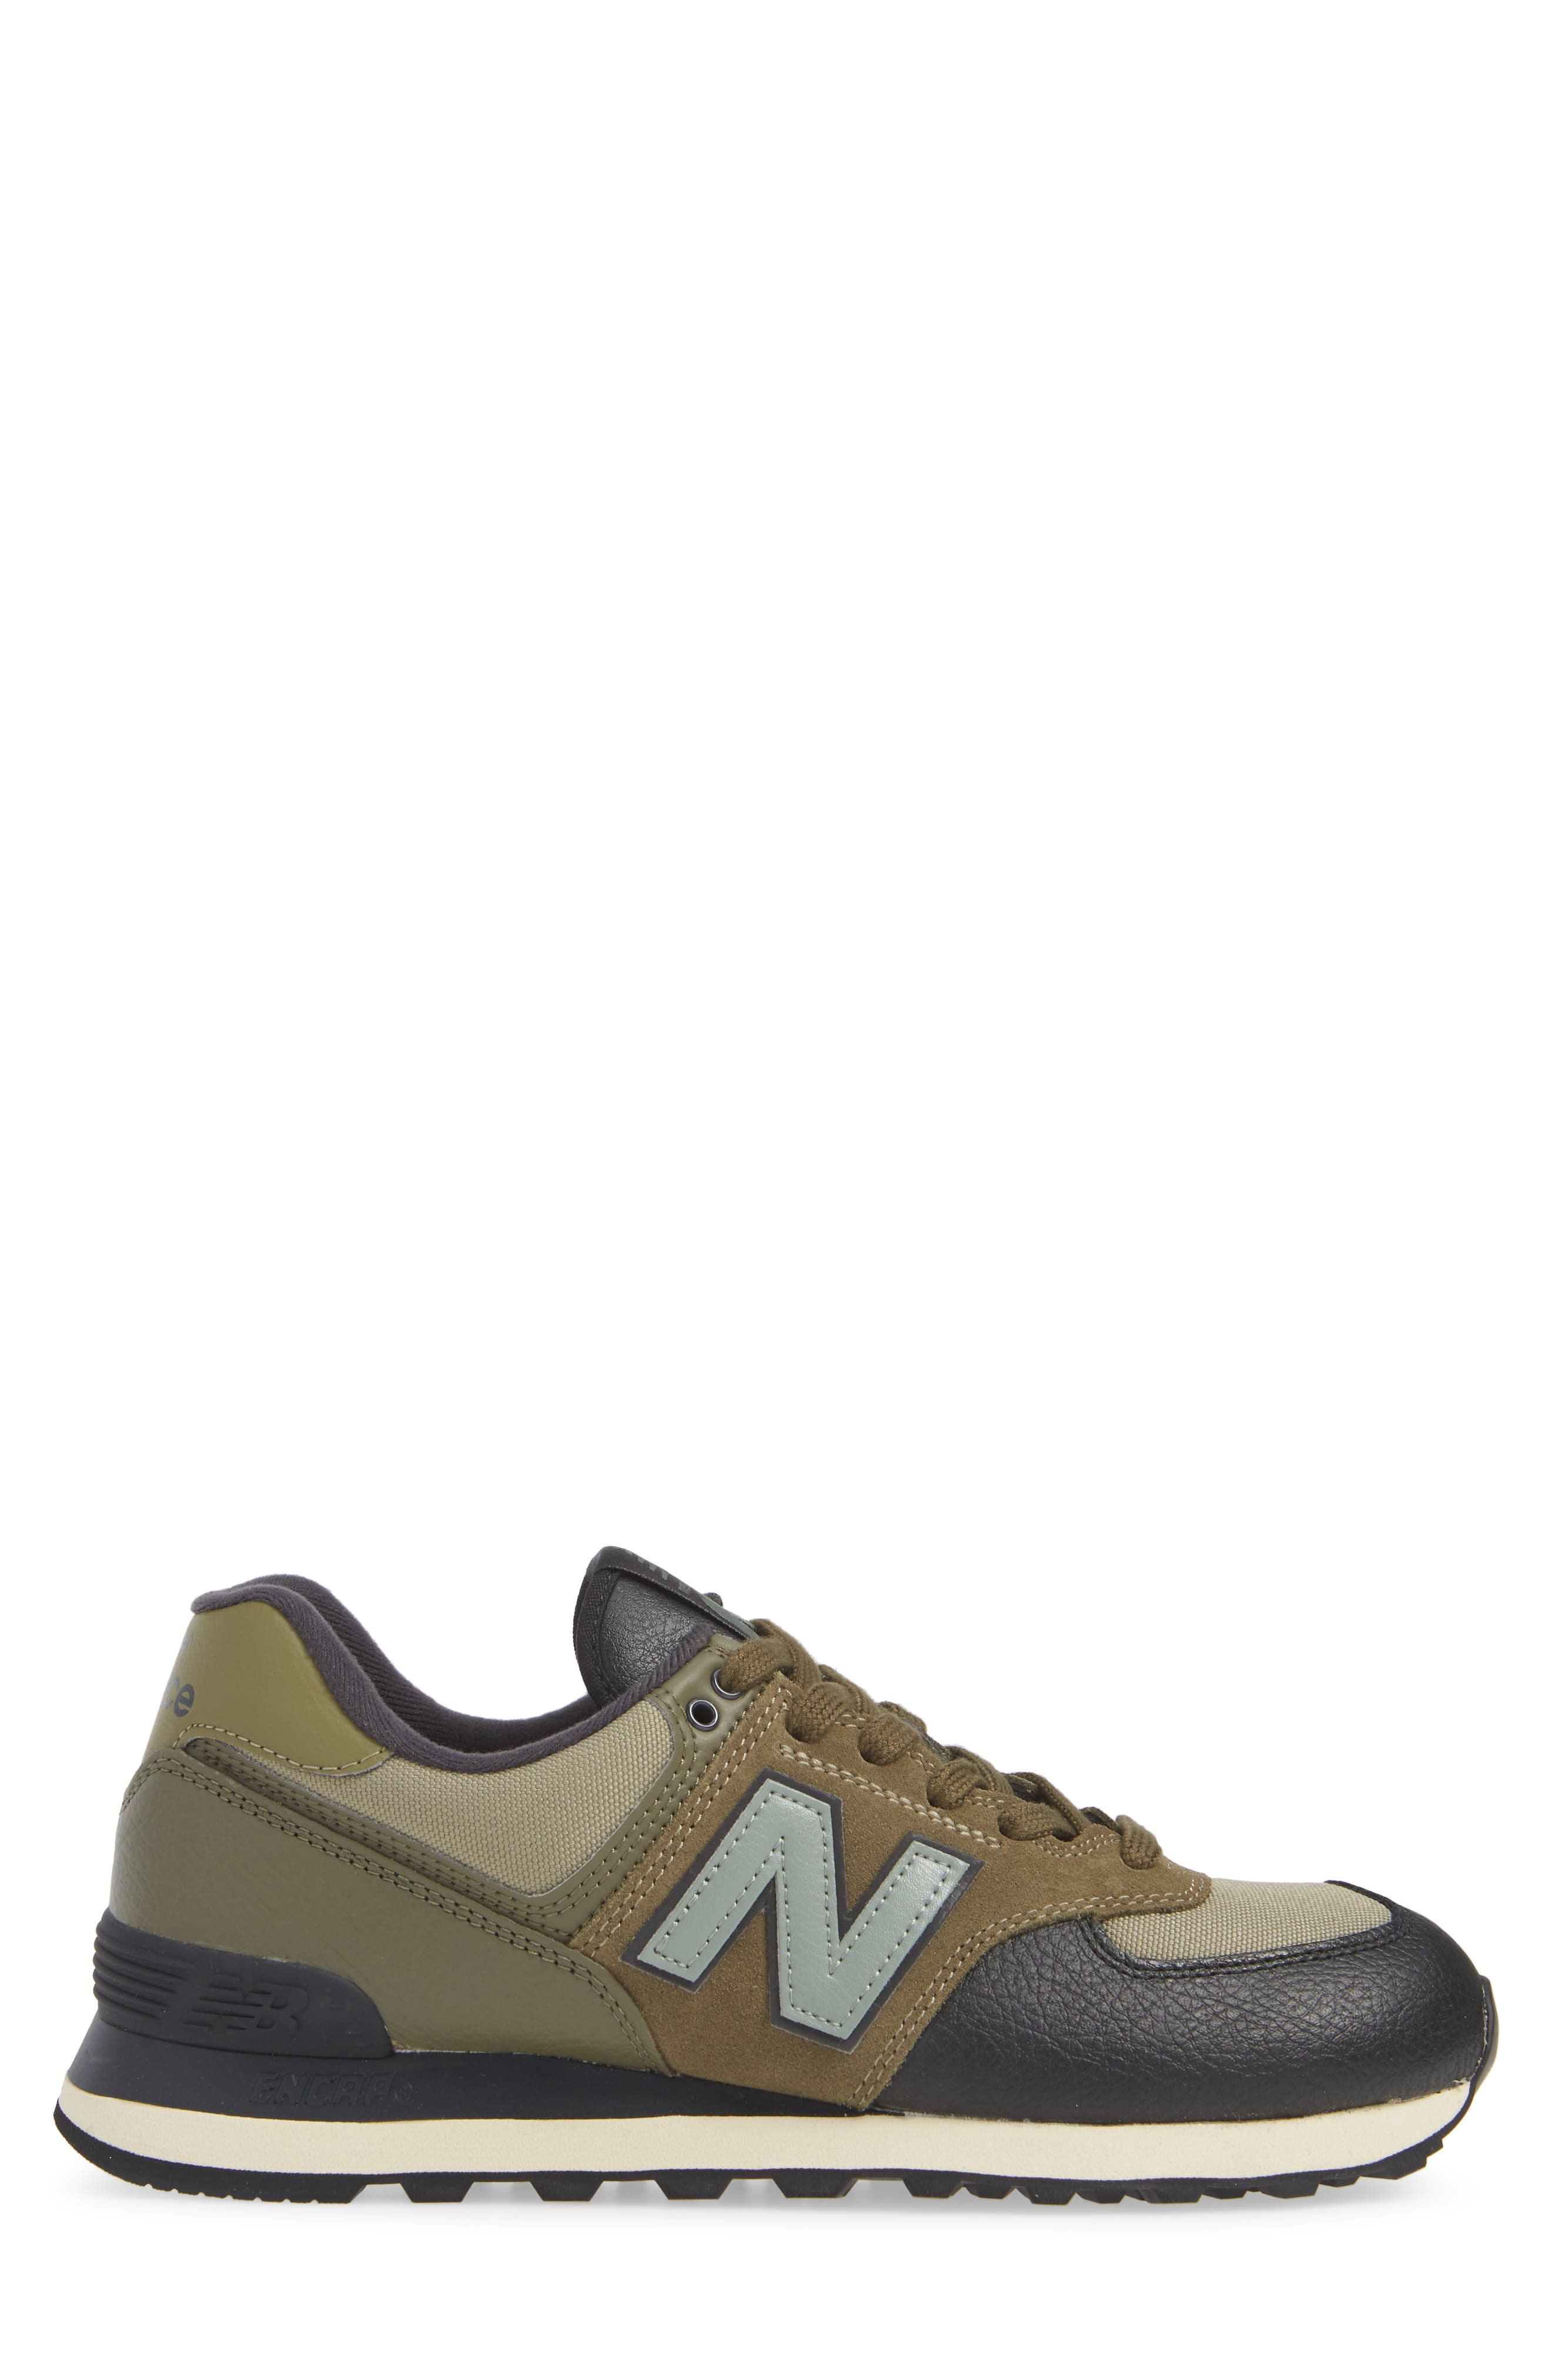 574 Classic Sneaker,                             Alternate thumbnail 3, color,                             COVERT GREEN SUEDE/ TEXTILE